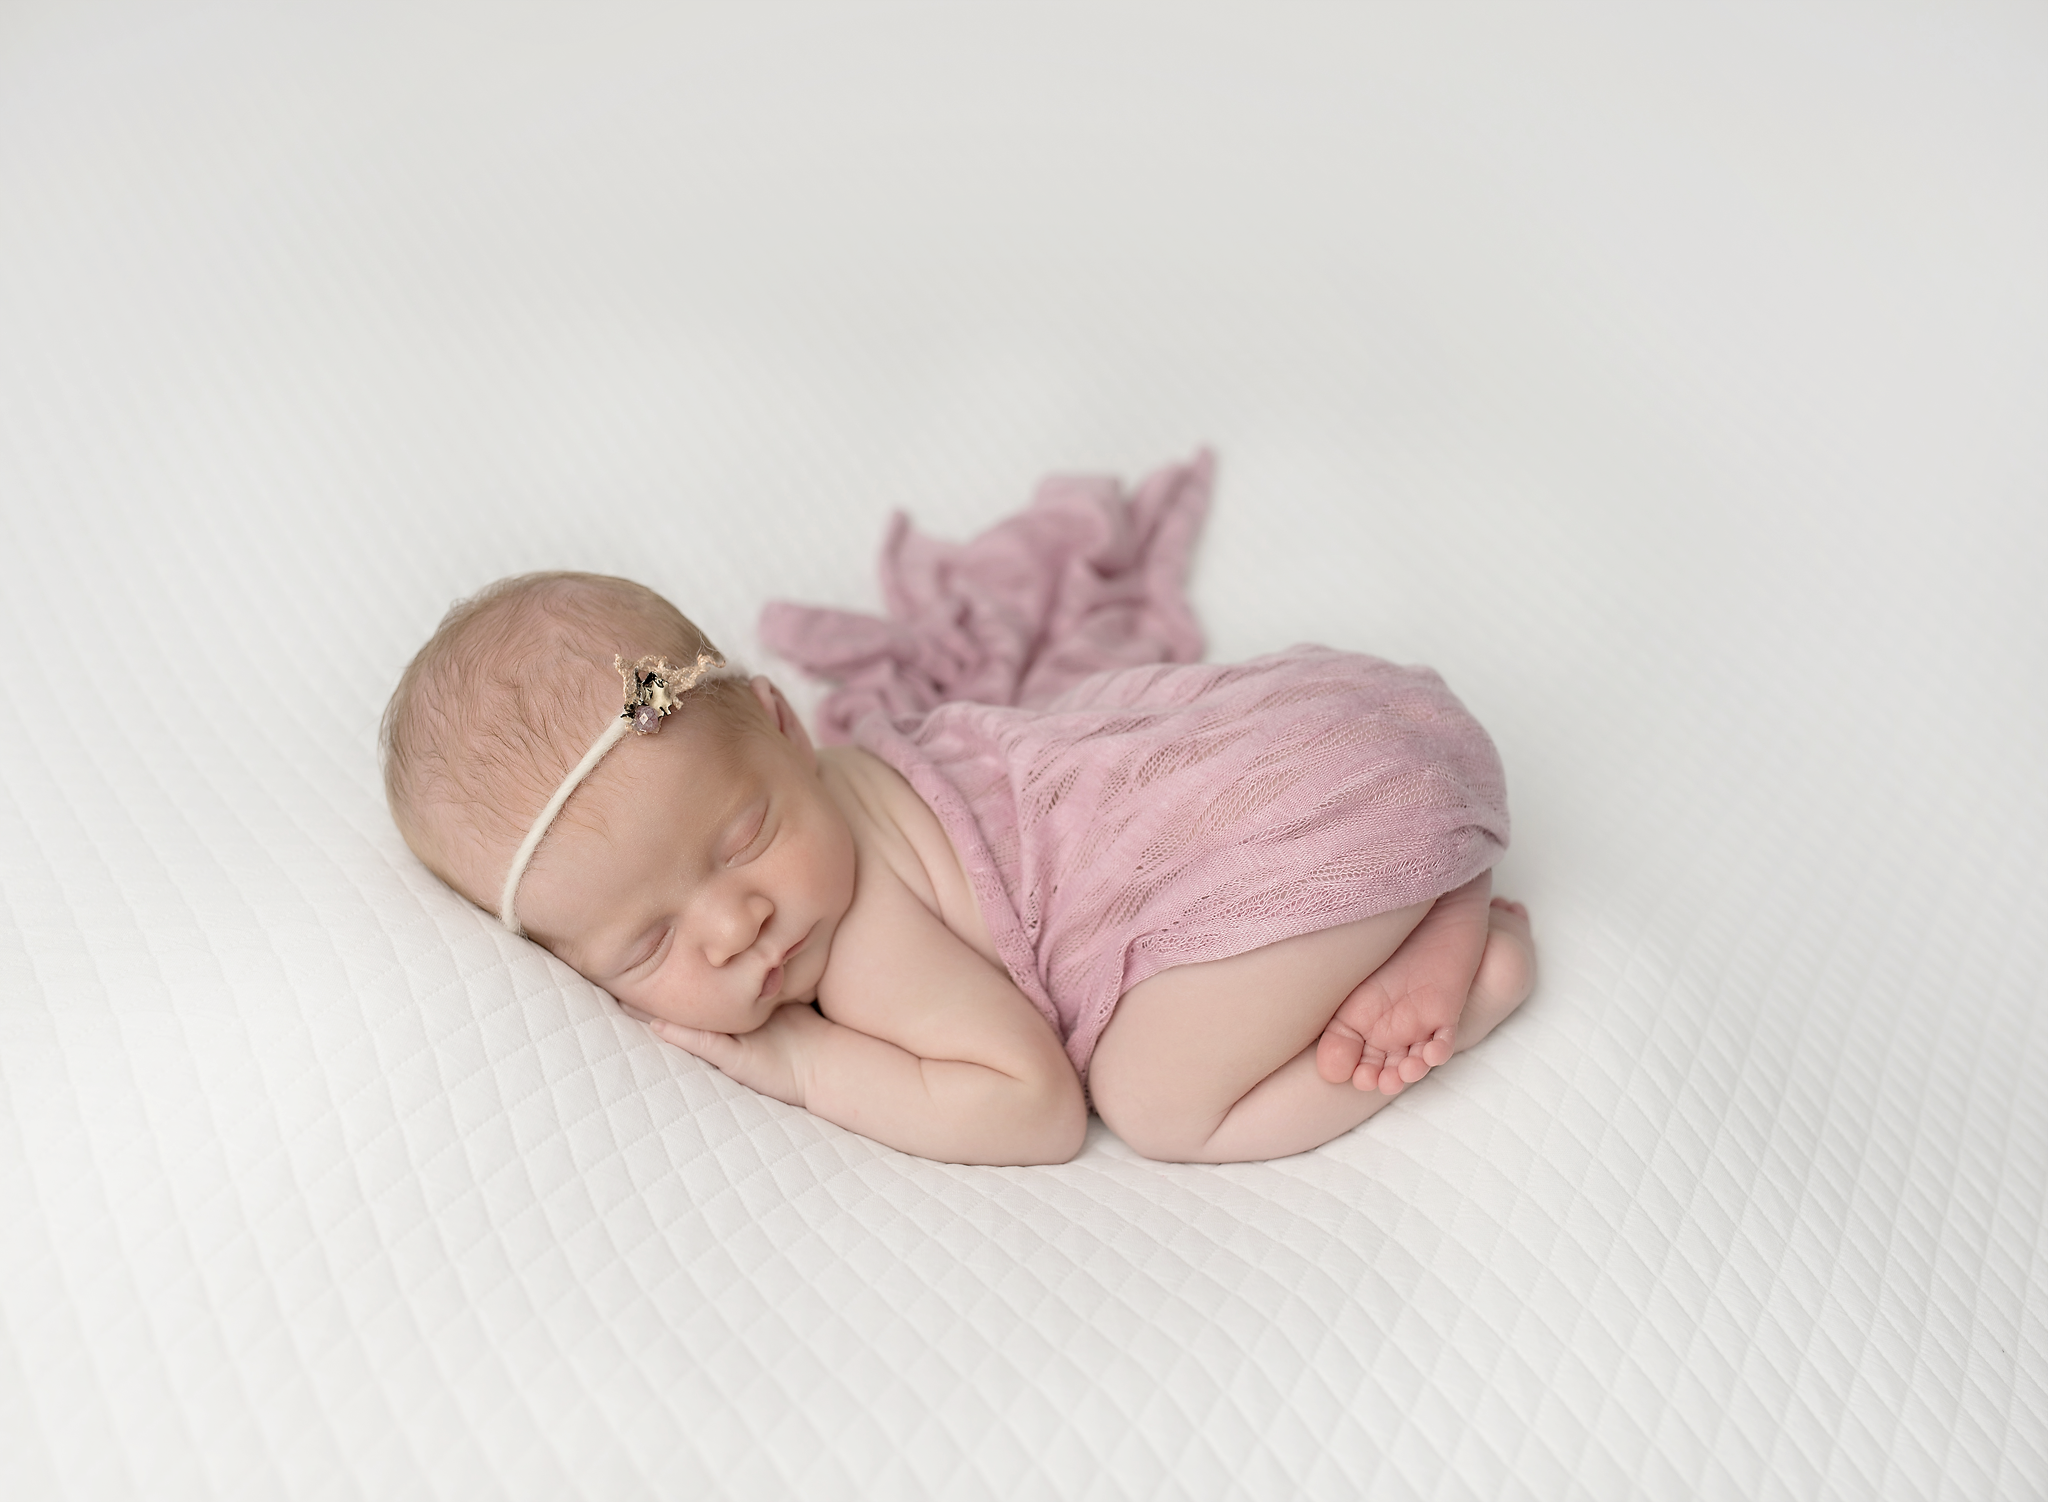 Titling/Alt Text/Description: 1. Newborn Photography Jacksonville 2. Jacksonville Newborn Photography 3. Jacksonville Newborn Photographer 4. St Augustine Newborn Photographer 5. St Augustine Newborn Photography